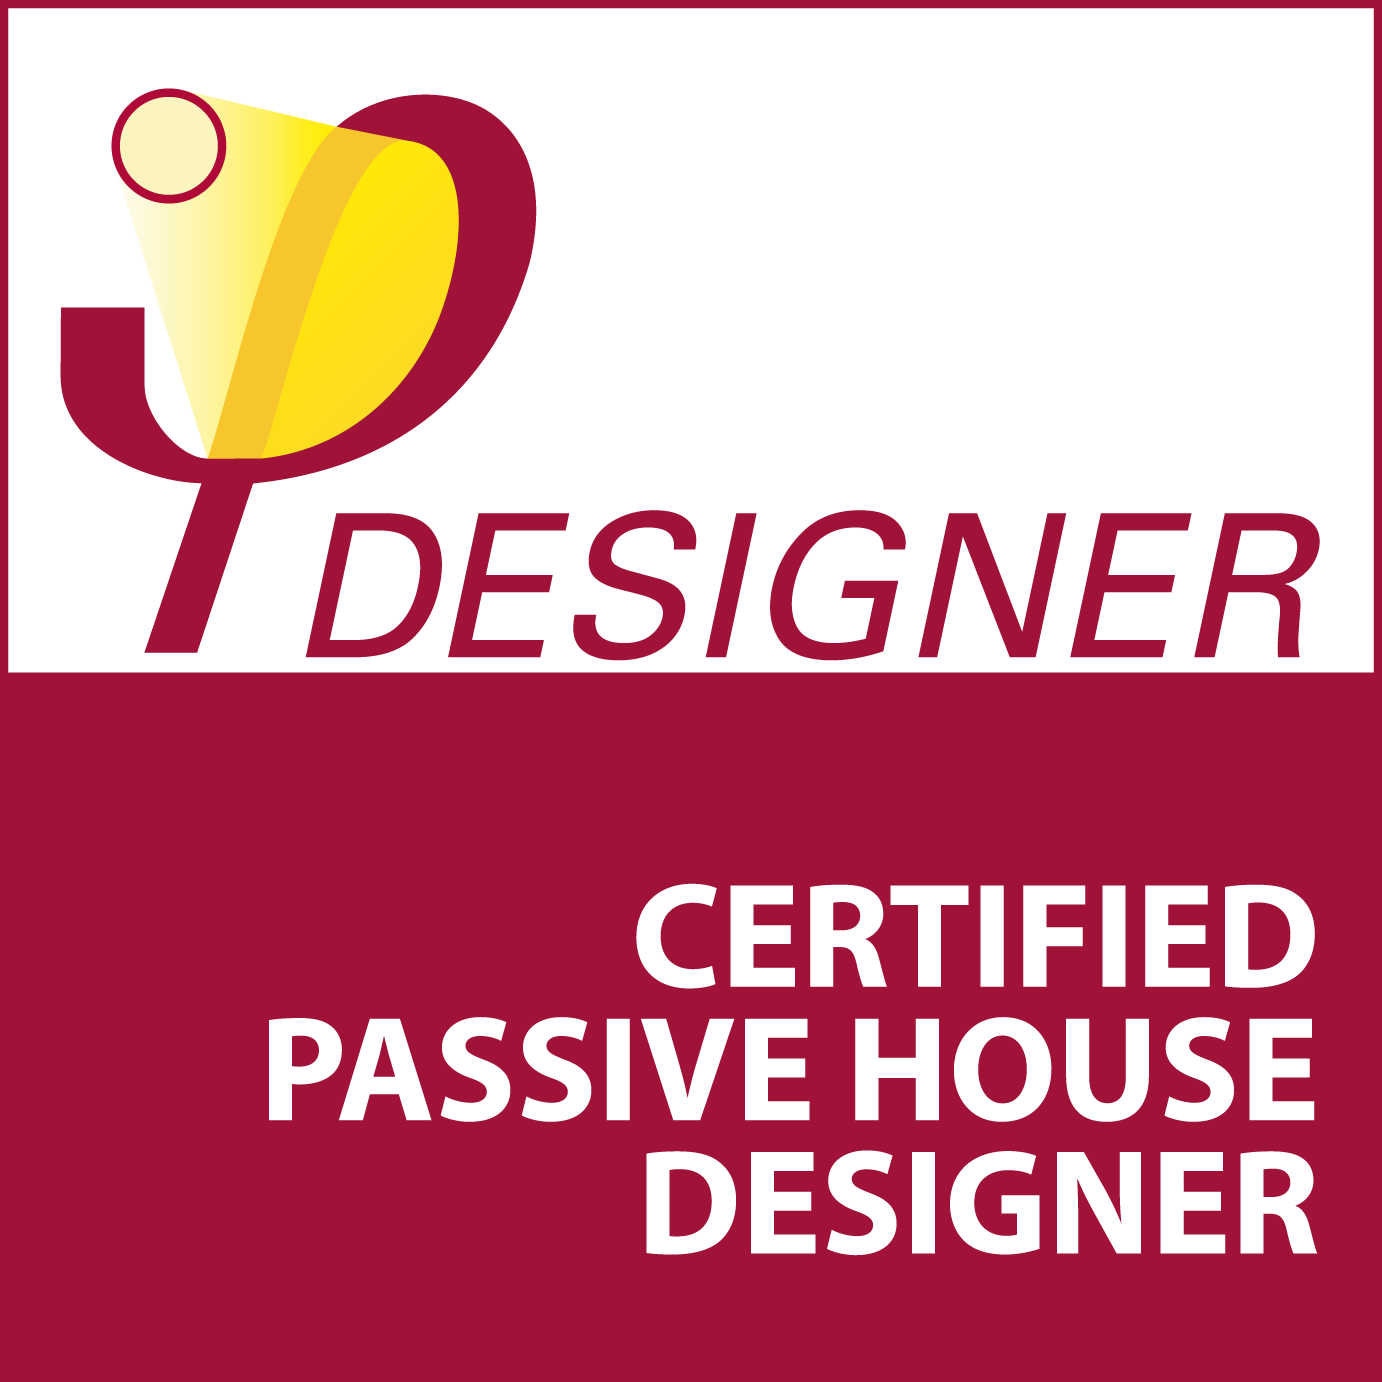 House design qualifications - An Error Occurred